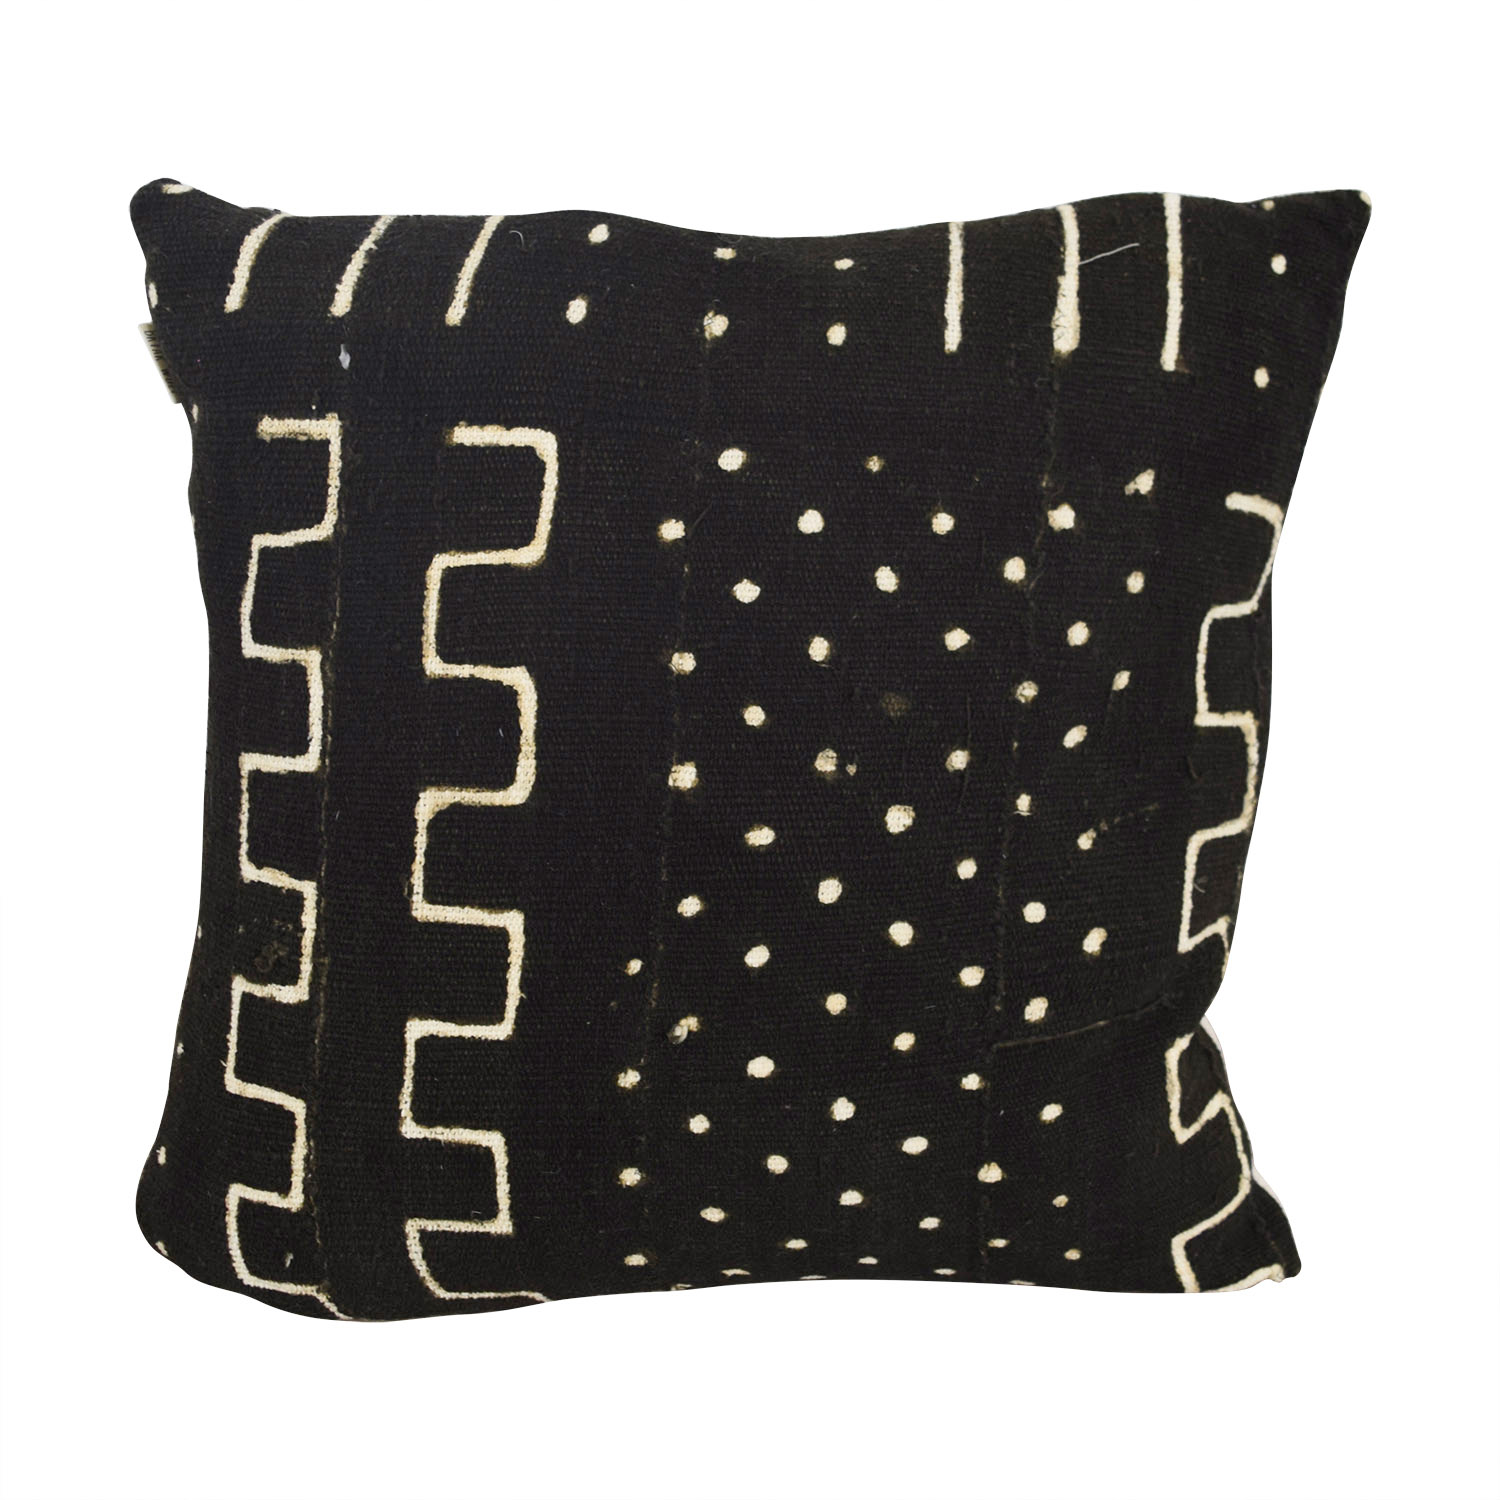 Etsy Etsy African Black and Beige Mudcloth Toss Pillow coupon